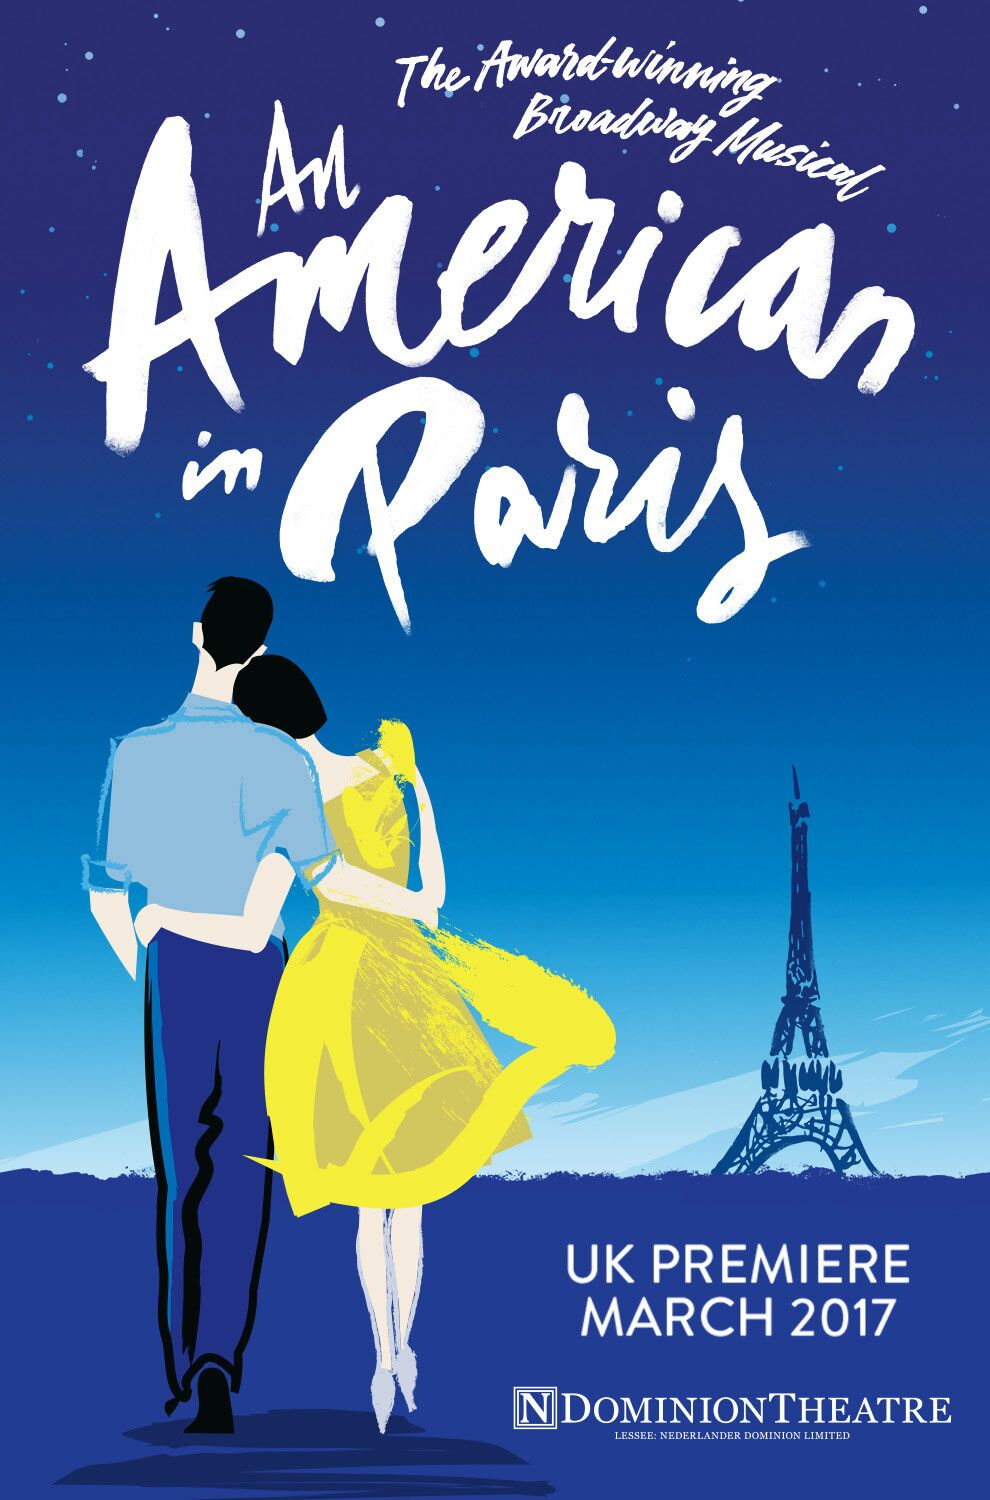 An-American-in-Paris_London